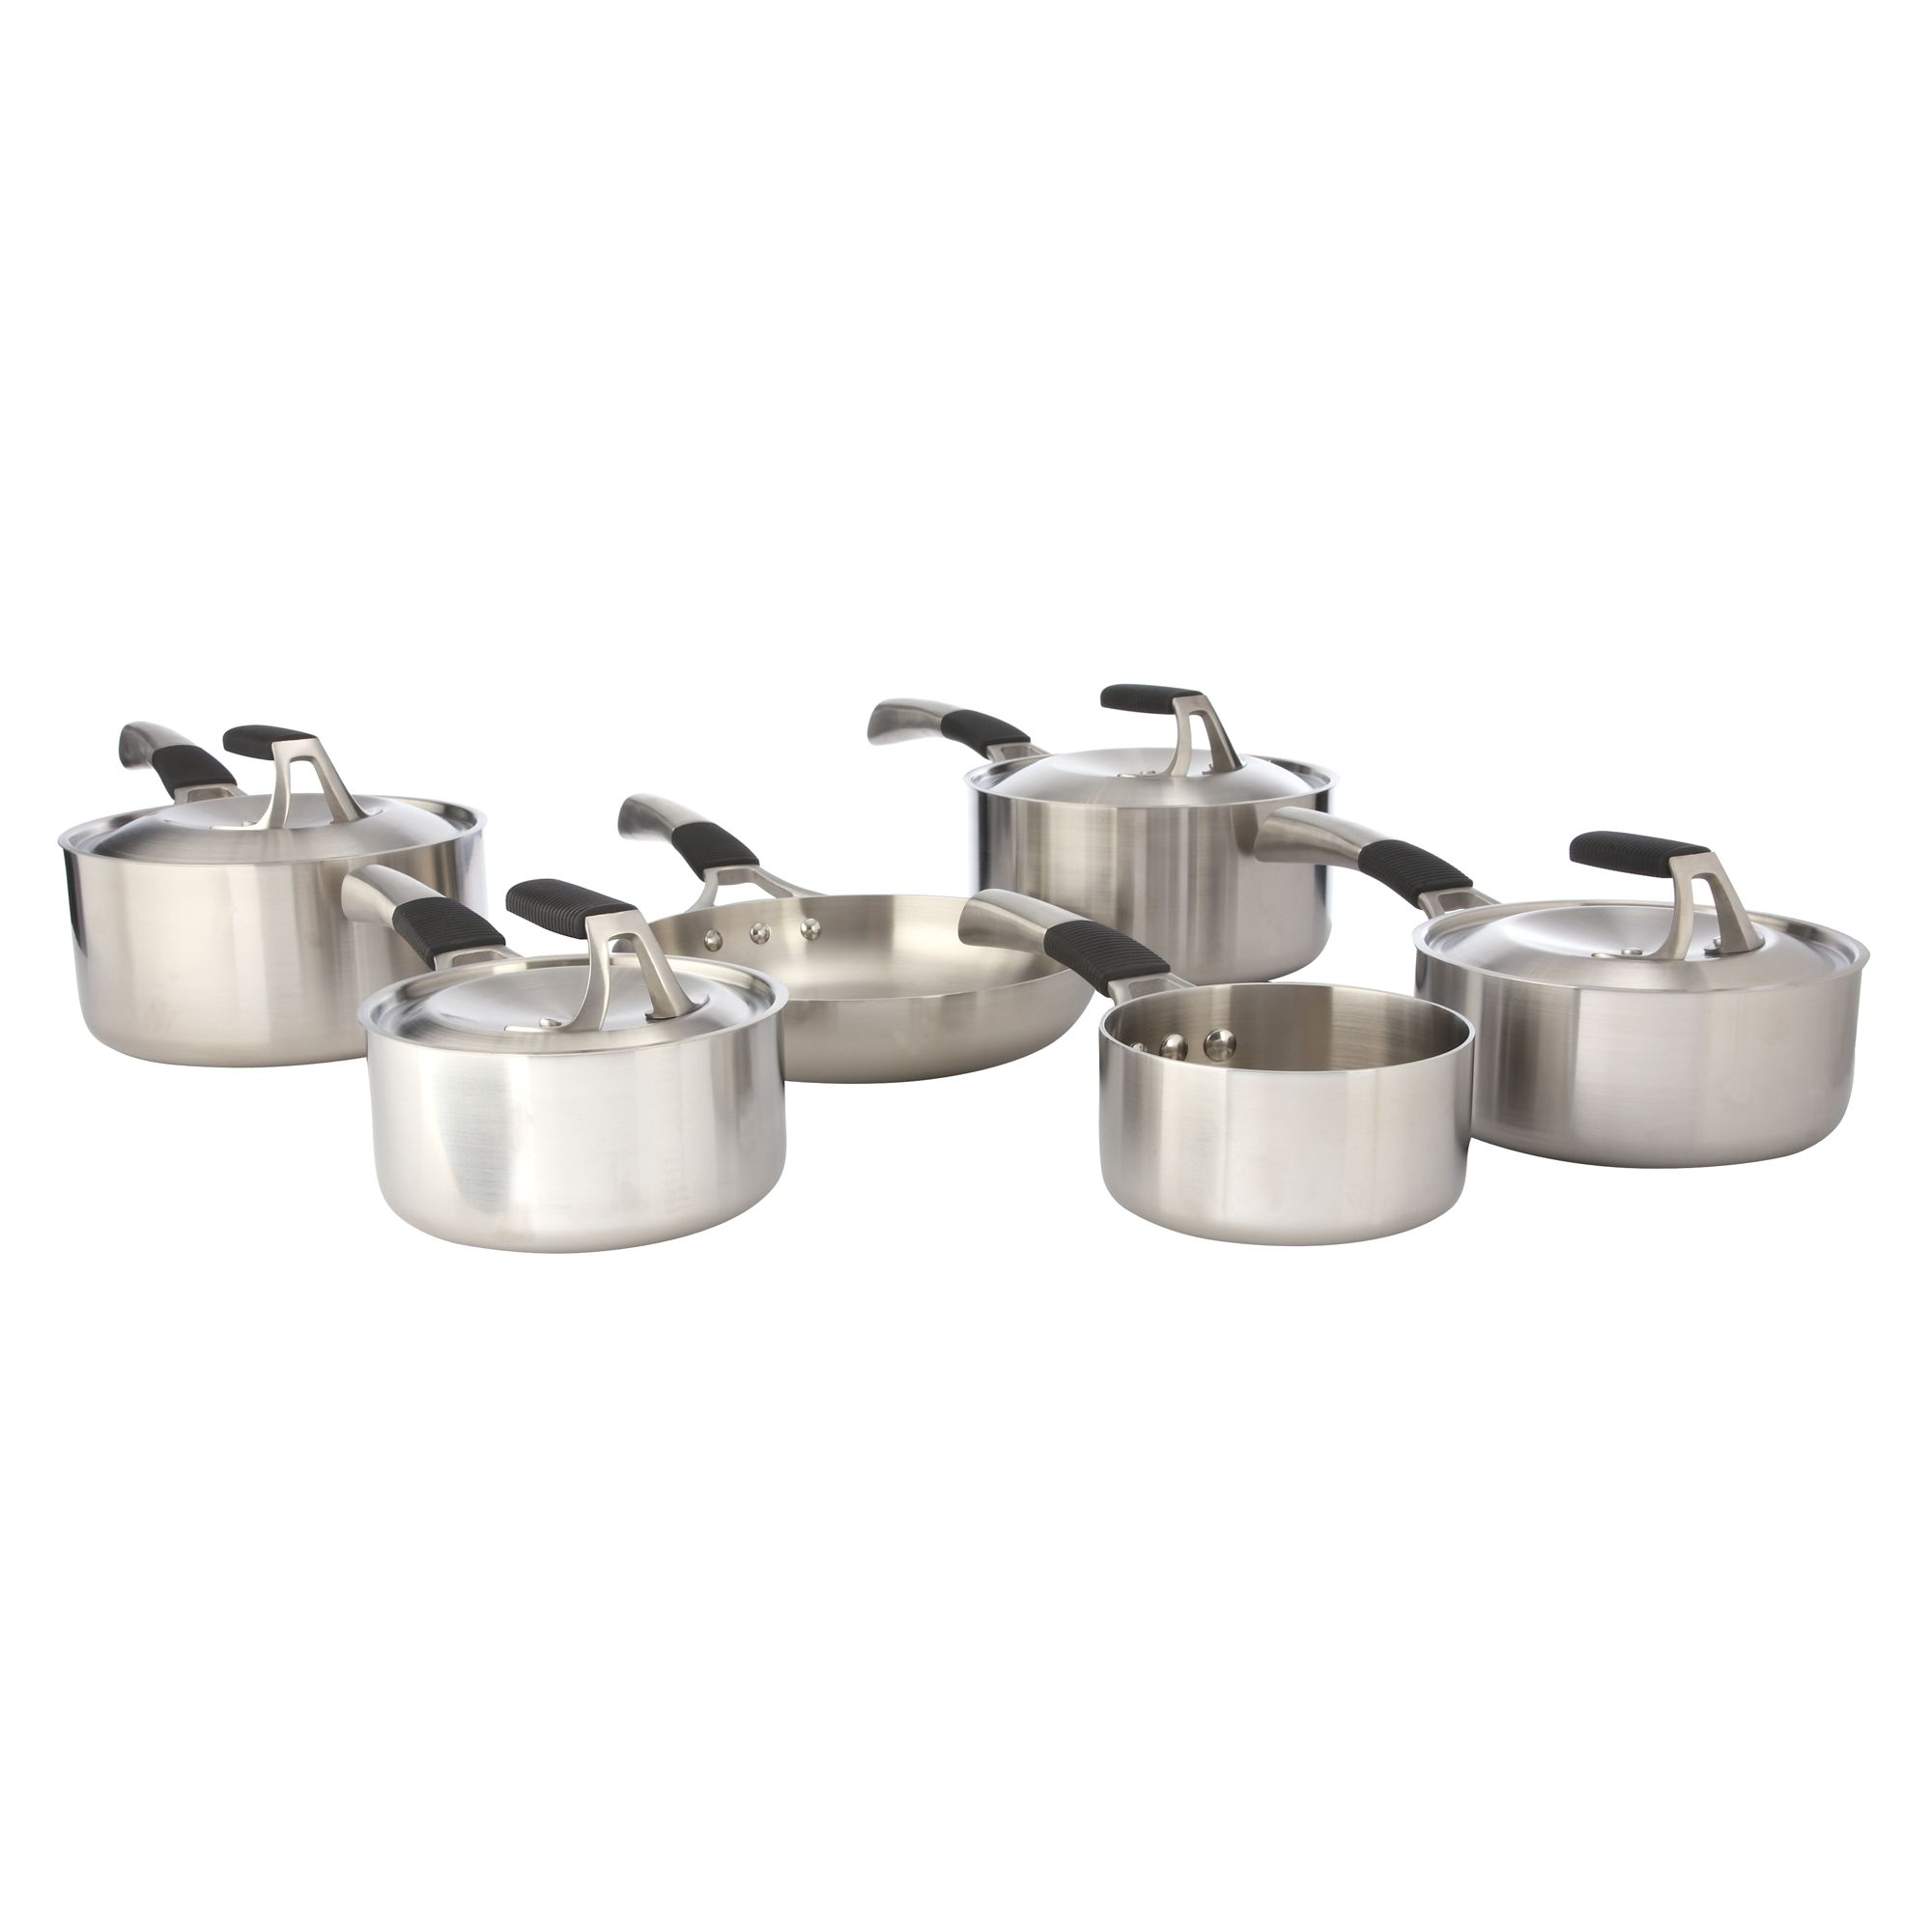 Ciroa Trini 24cm casserole pan with lid product image